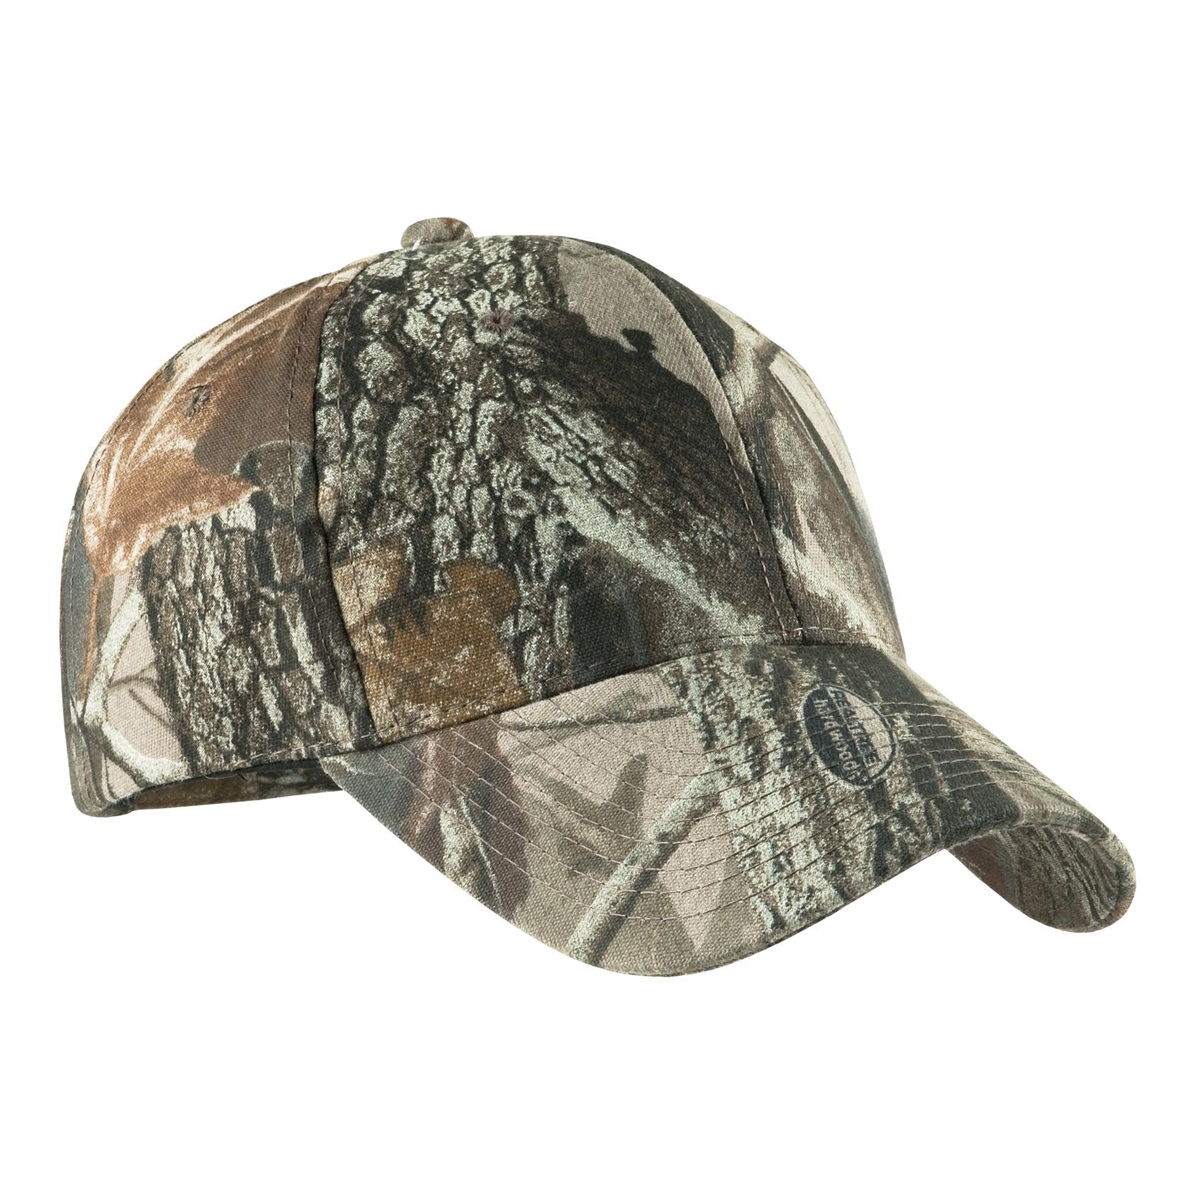 Port Authority C855 Pro Camouflage Series Cap Realtree